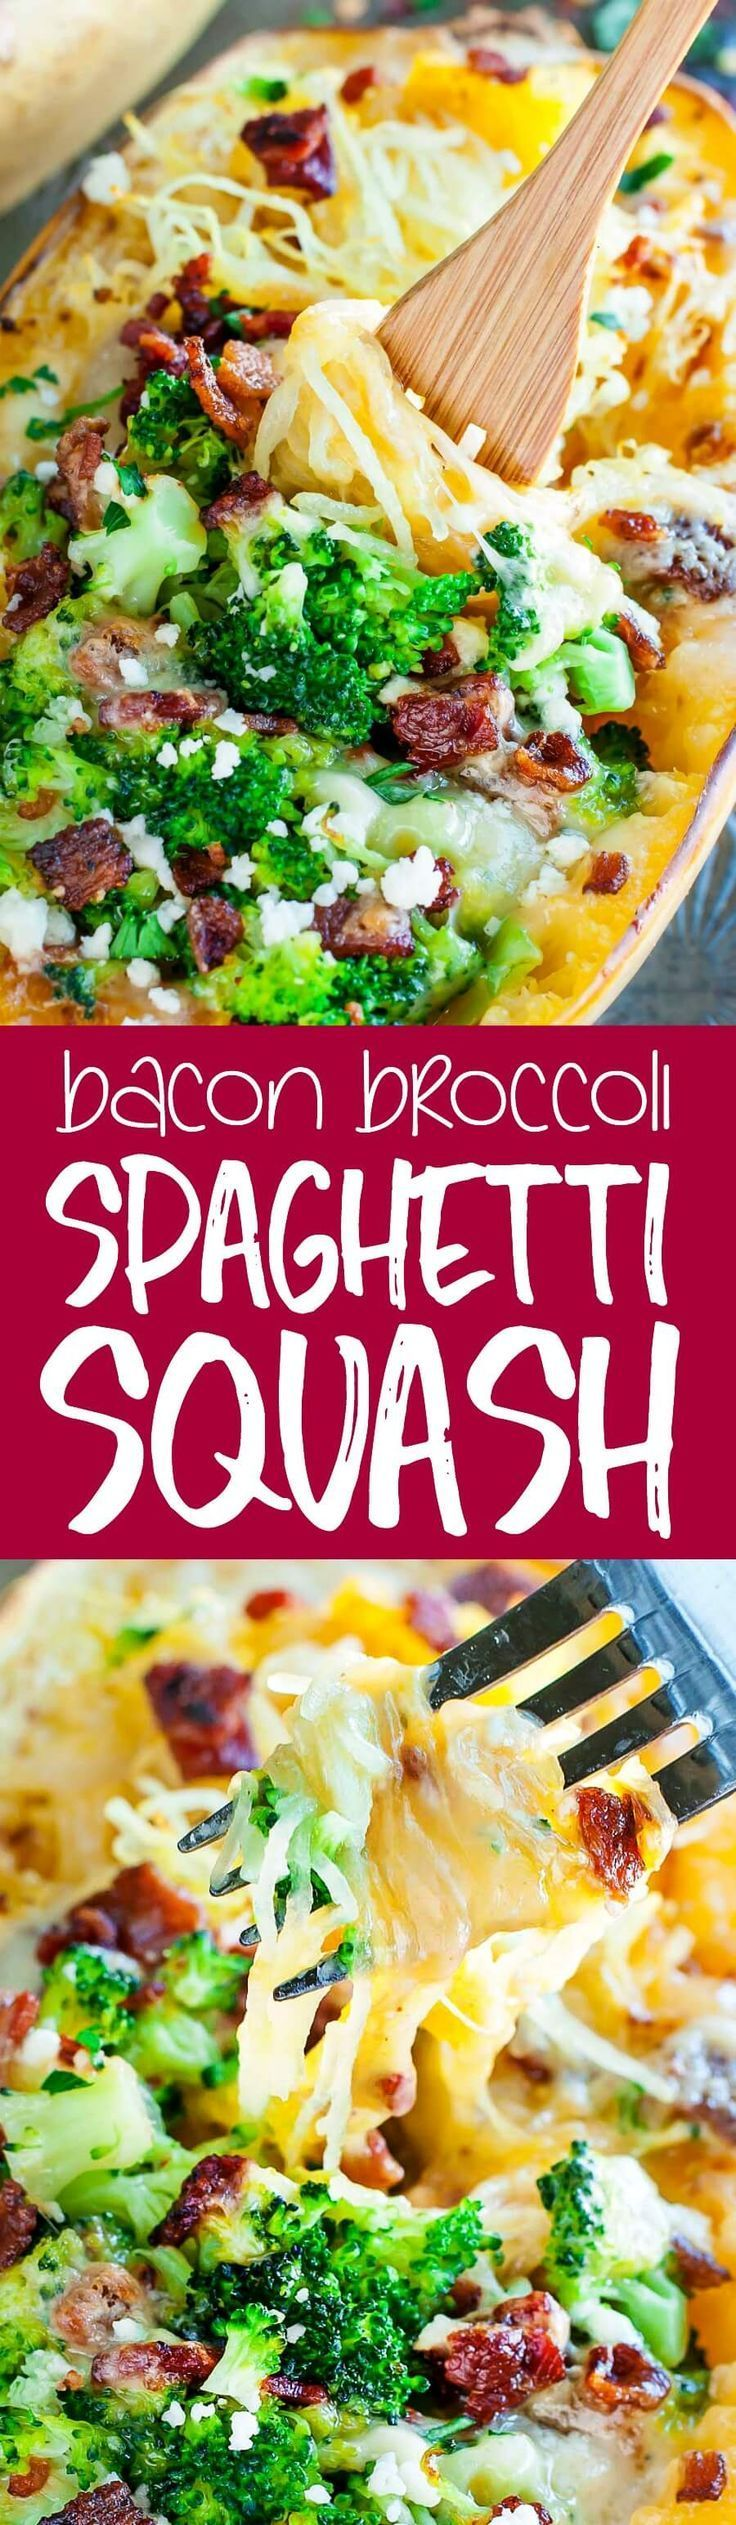 This Cheesy Bacon Broccoli Stuffed Spaghetti Squash is stuffed to the brim with tender broccoli, crispy bacon, and melted cheese.